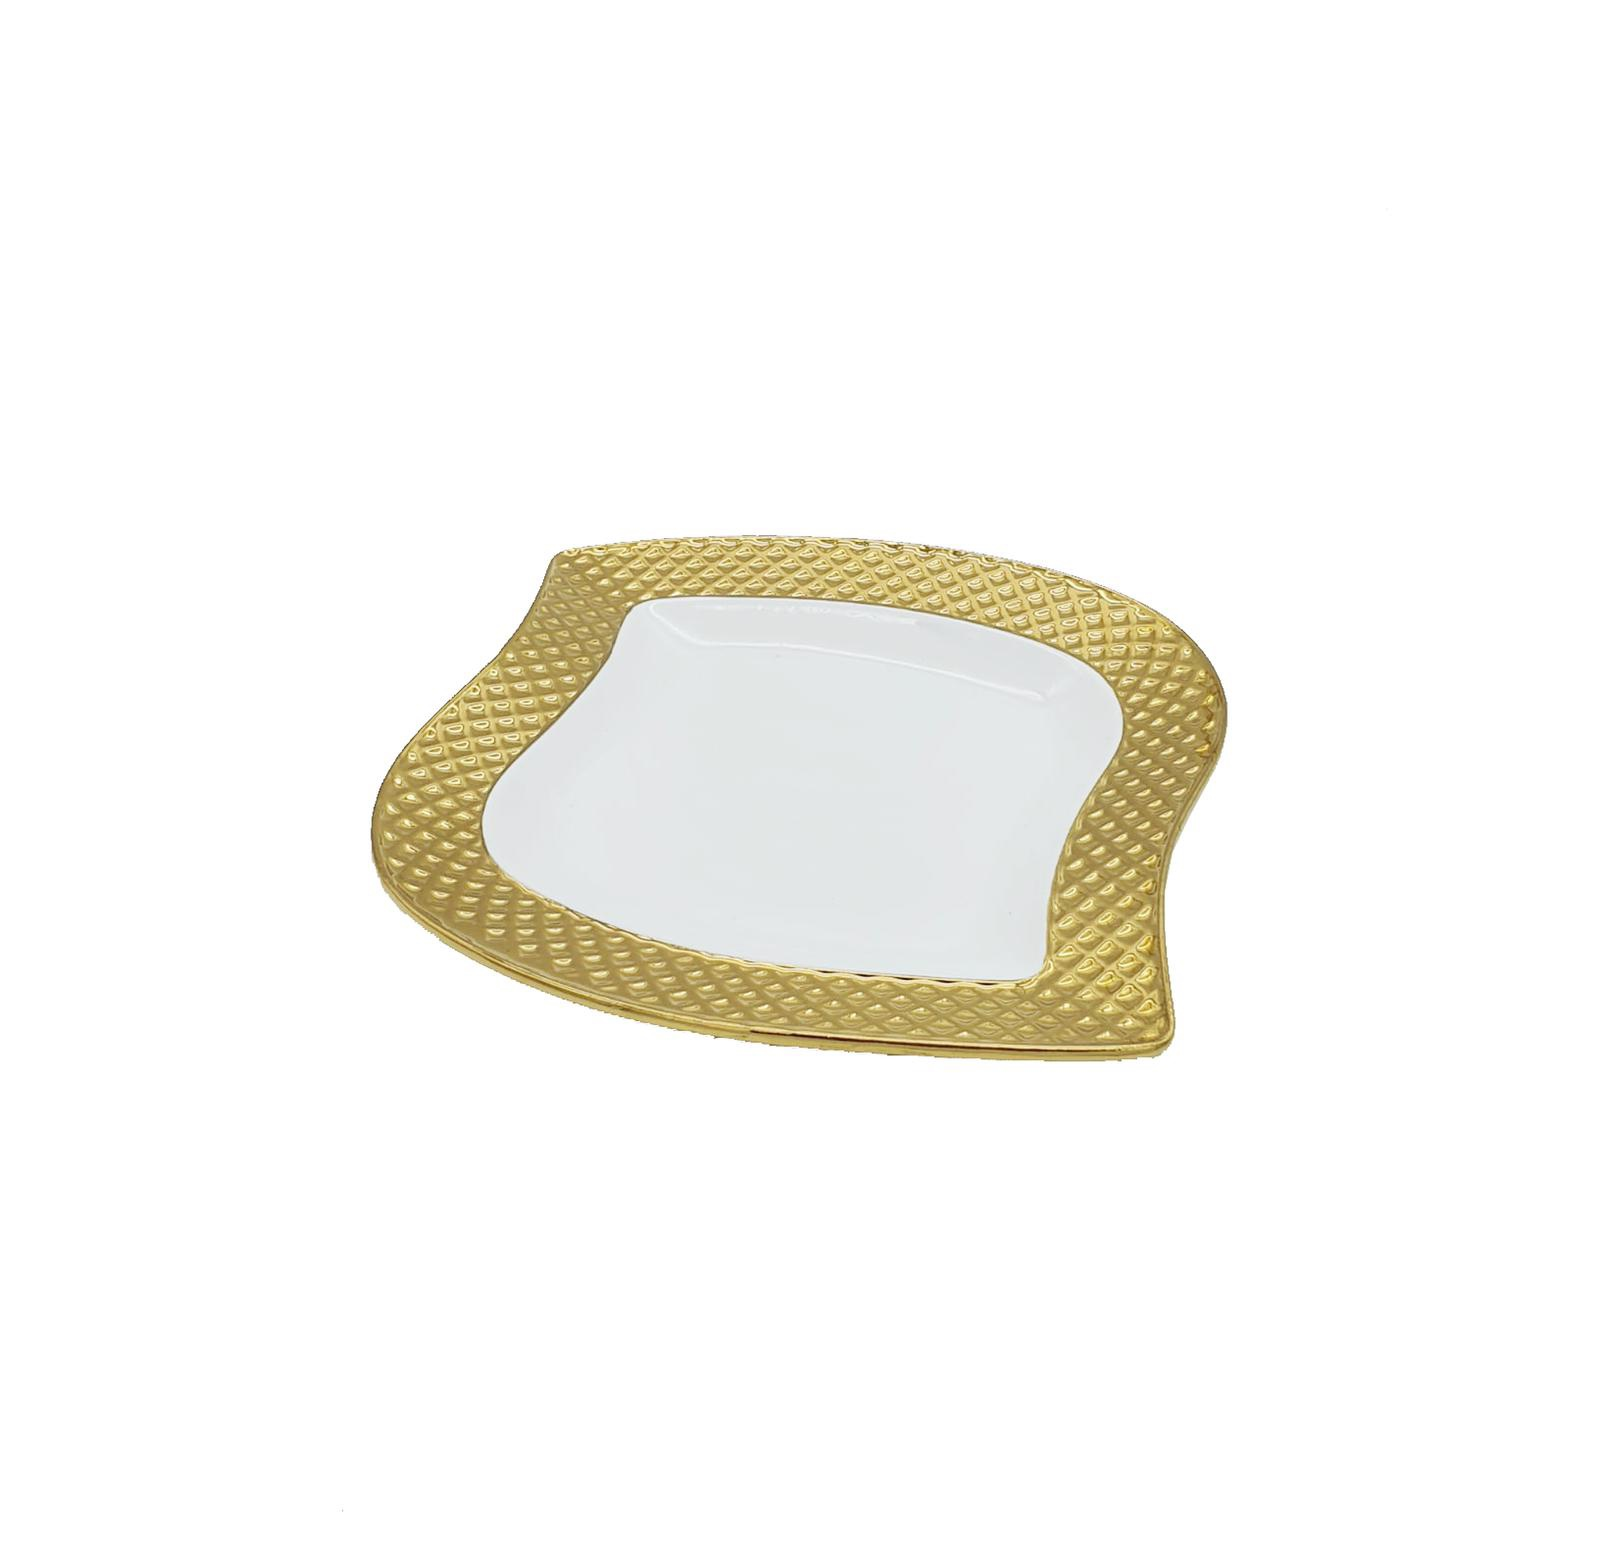 Buy White & Gold Medium Serving Plate